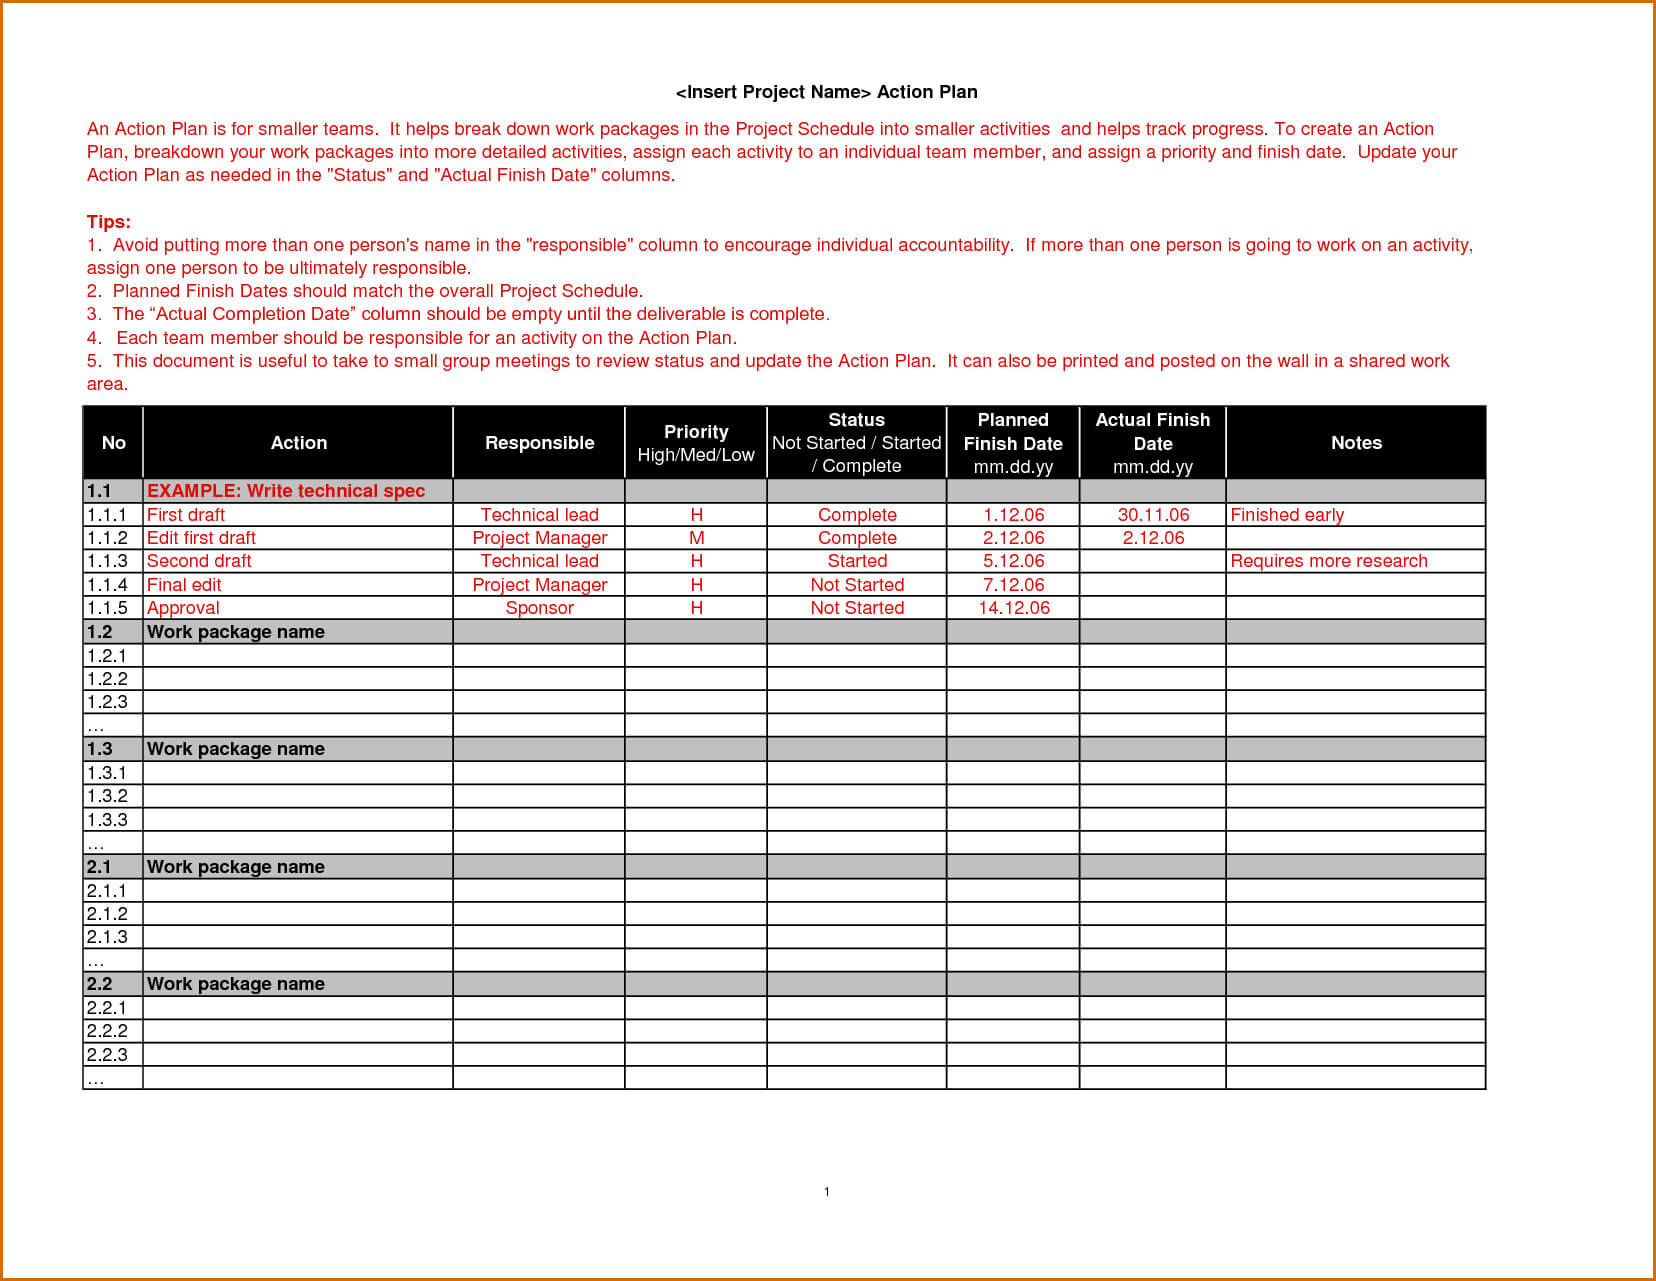 018 Weekly Work Plan Template Word Ideas Action Exceptional Regarding Work Plan Template Word